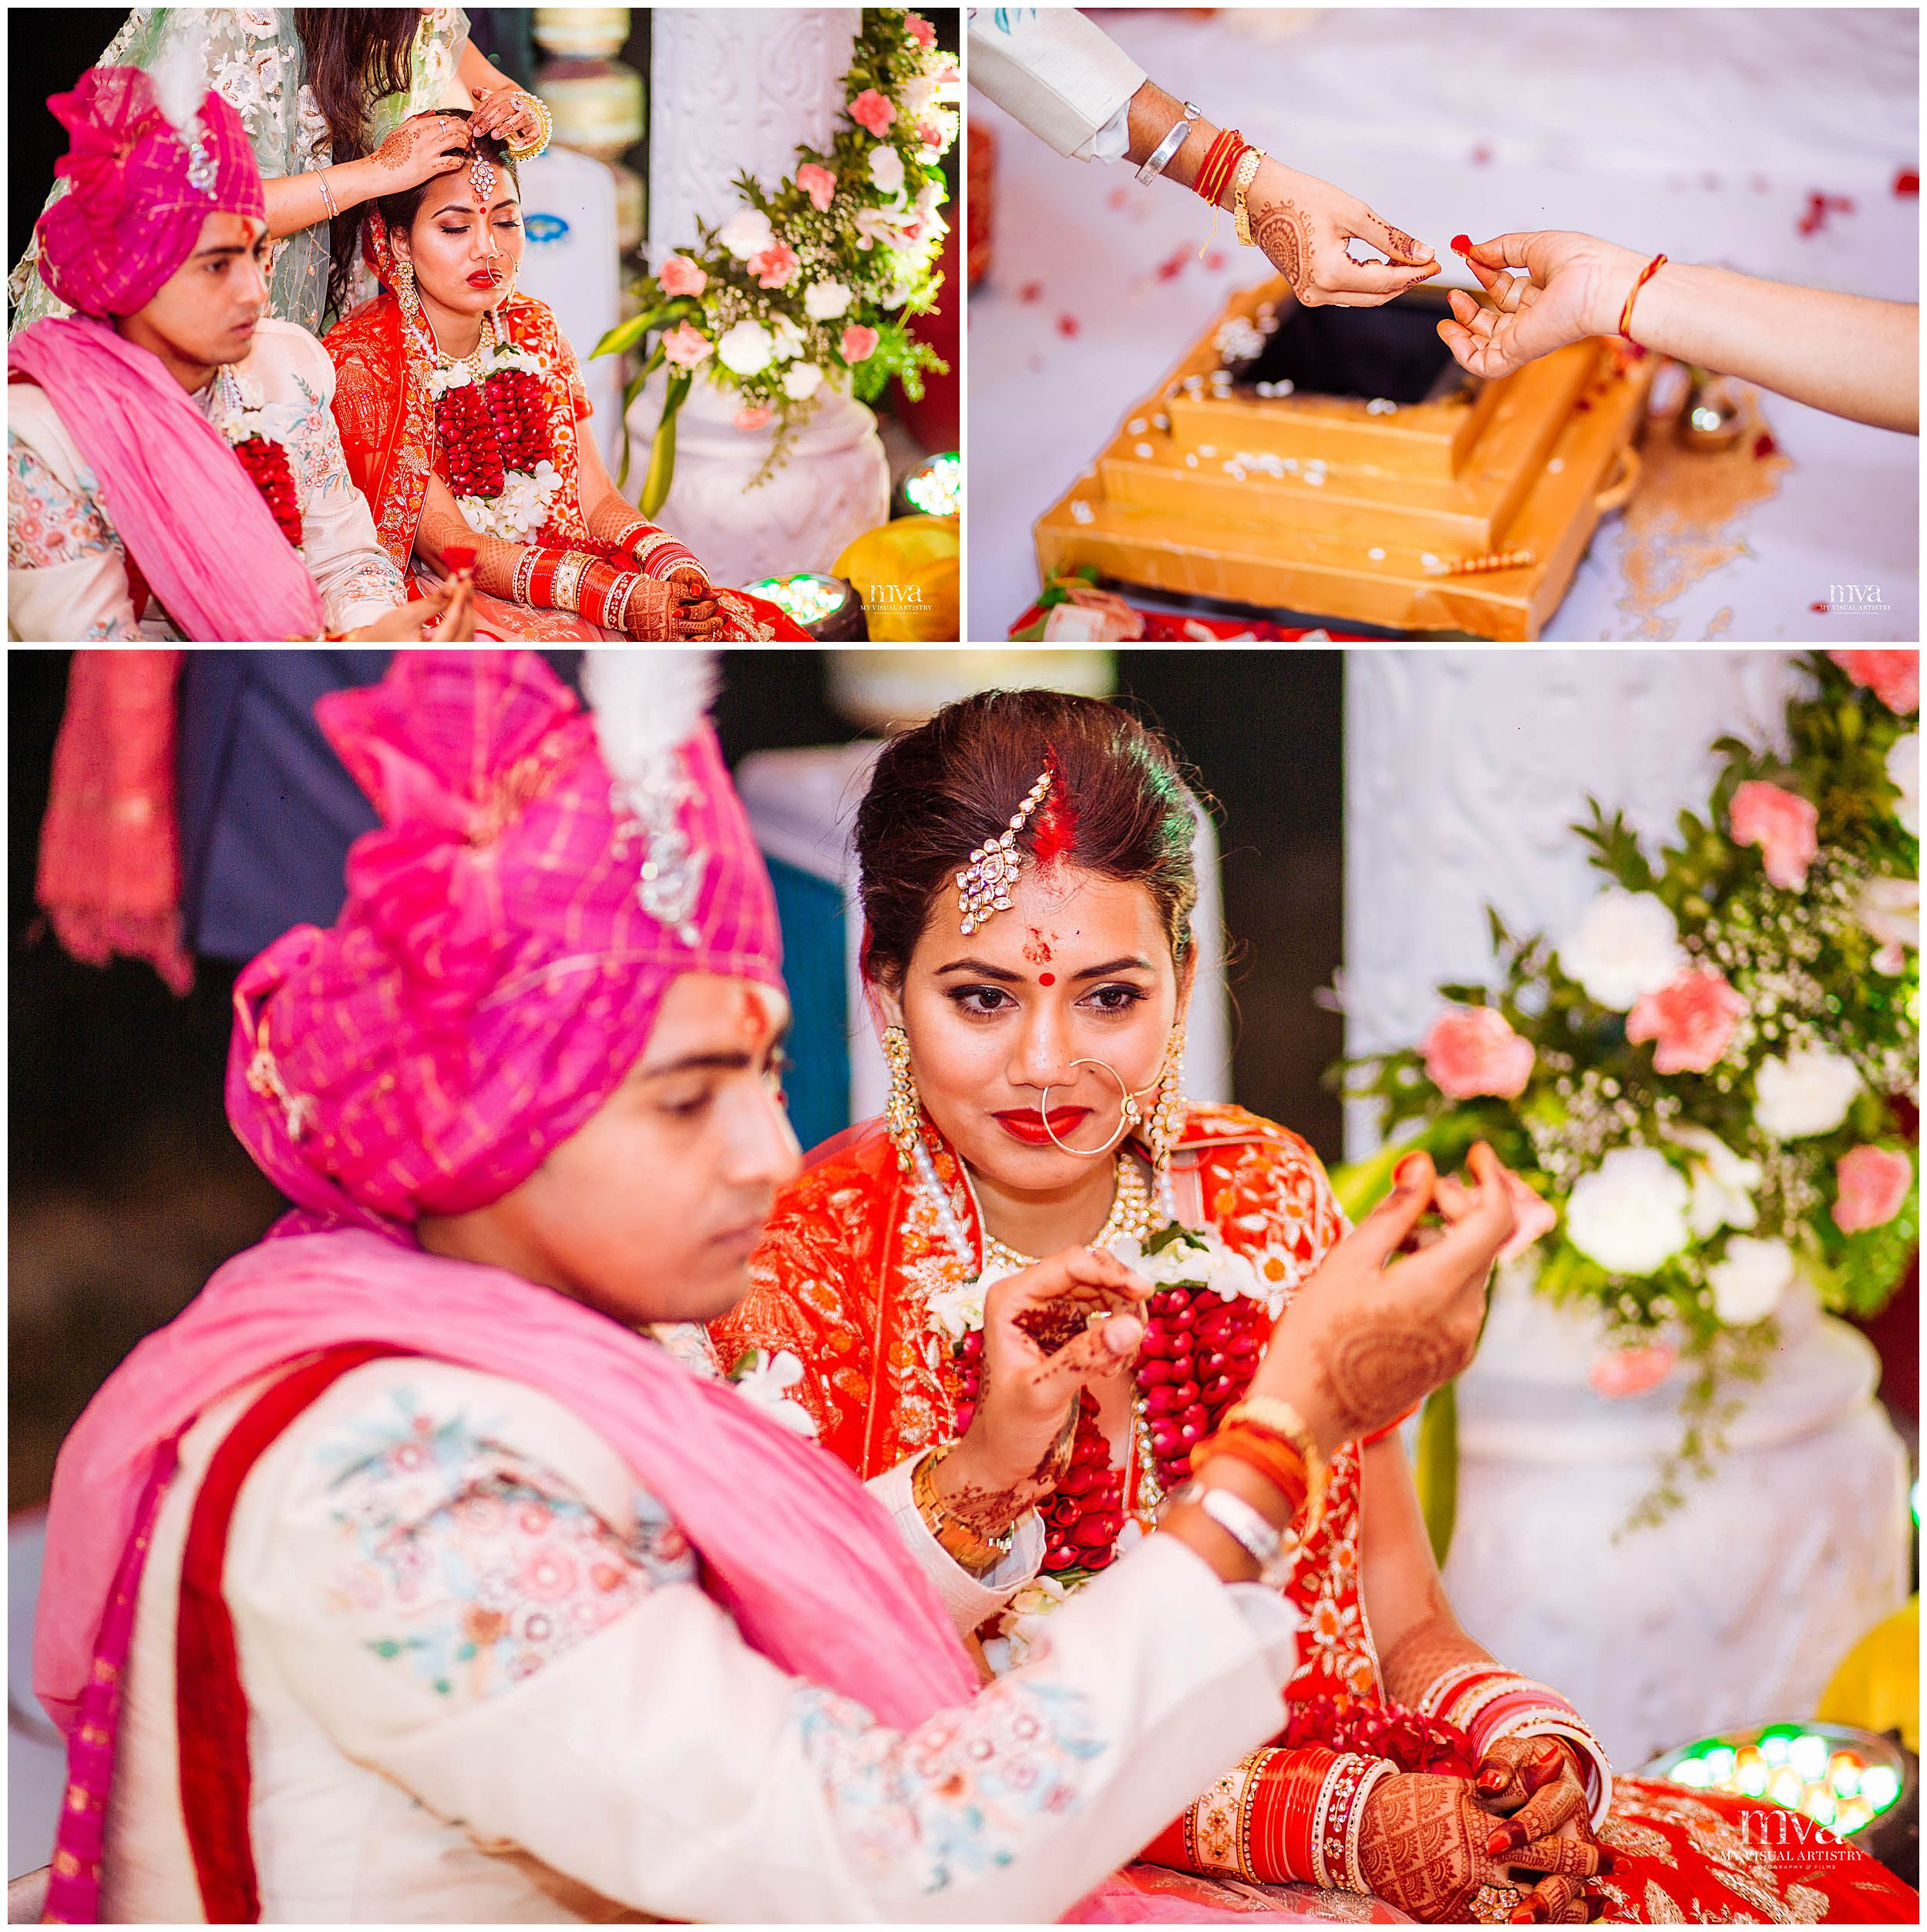 ROHIT_SANIYA_MYVISUALARTISTRY__WEDDING_PHOTOGRAPHER_GOA_DESTINATION_CAREVELA_RESORT_0024.jpg